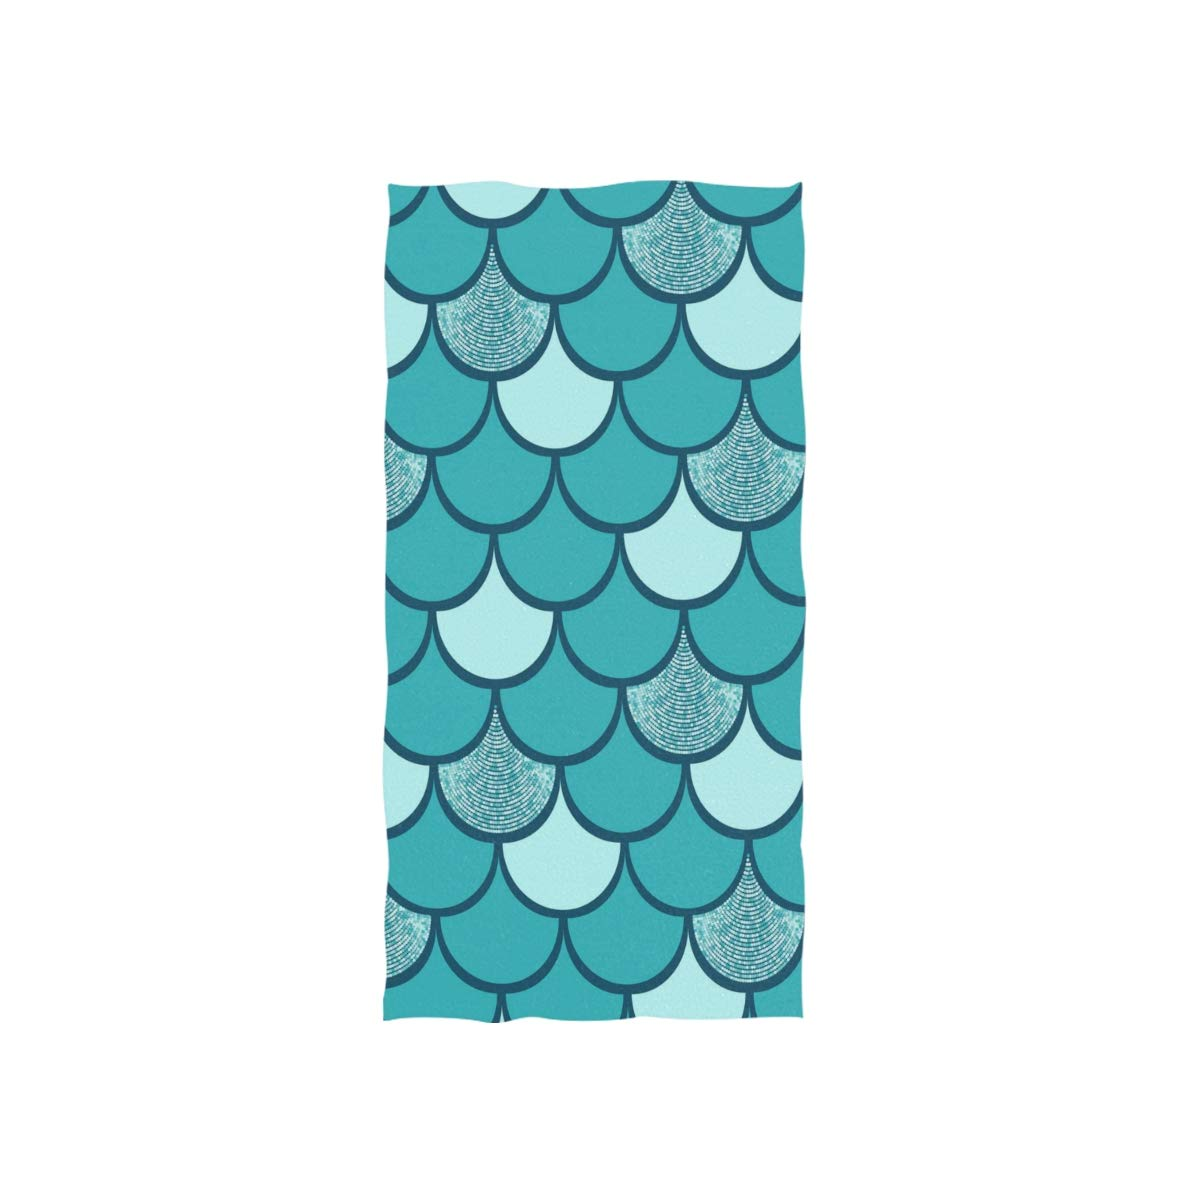 30 x 15 inch susiyo Turquoise Glitter Fish Mermaid Scale Hand Towels Luxury Print Bathroom Towel Highly Absorbent Extra Soft Fingertip Towels Multipurpose Towels for Yoga Gym Spa Hotel Bathroom